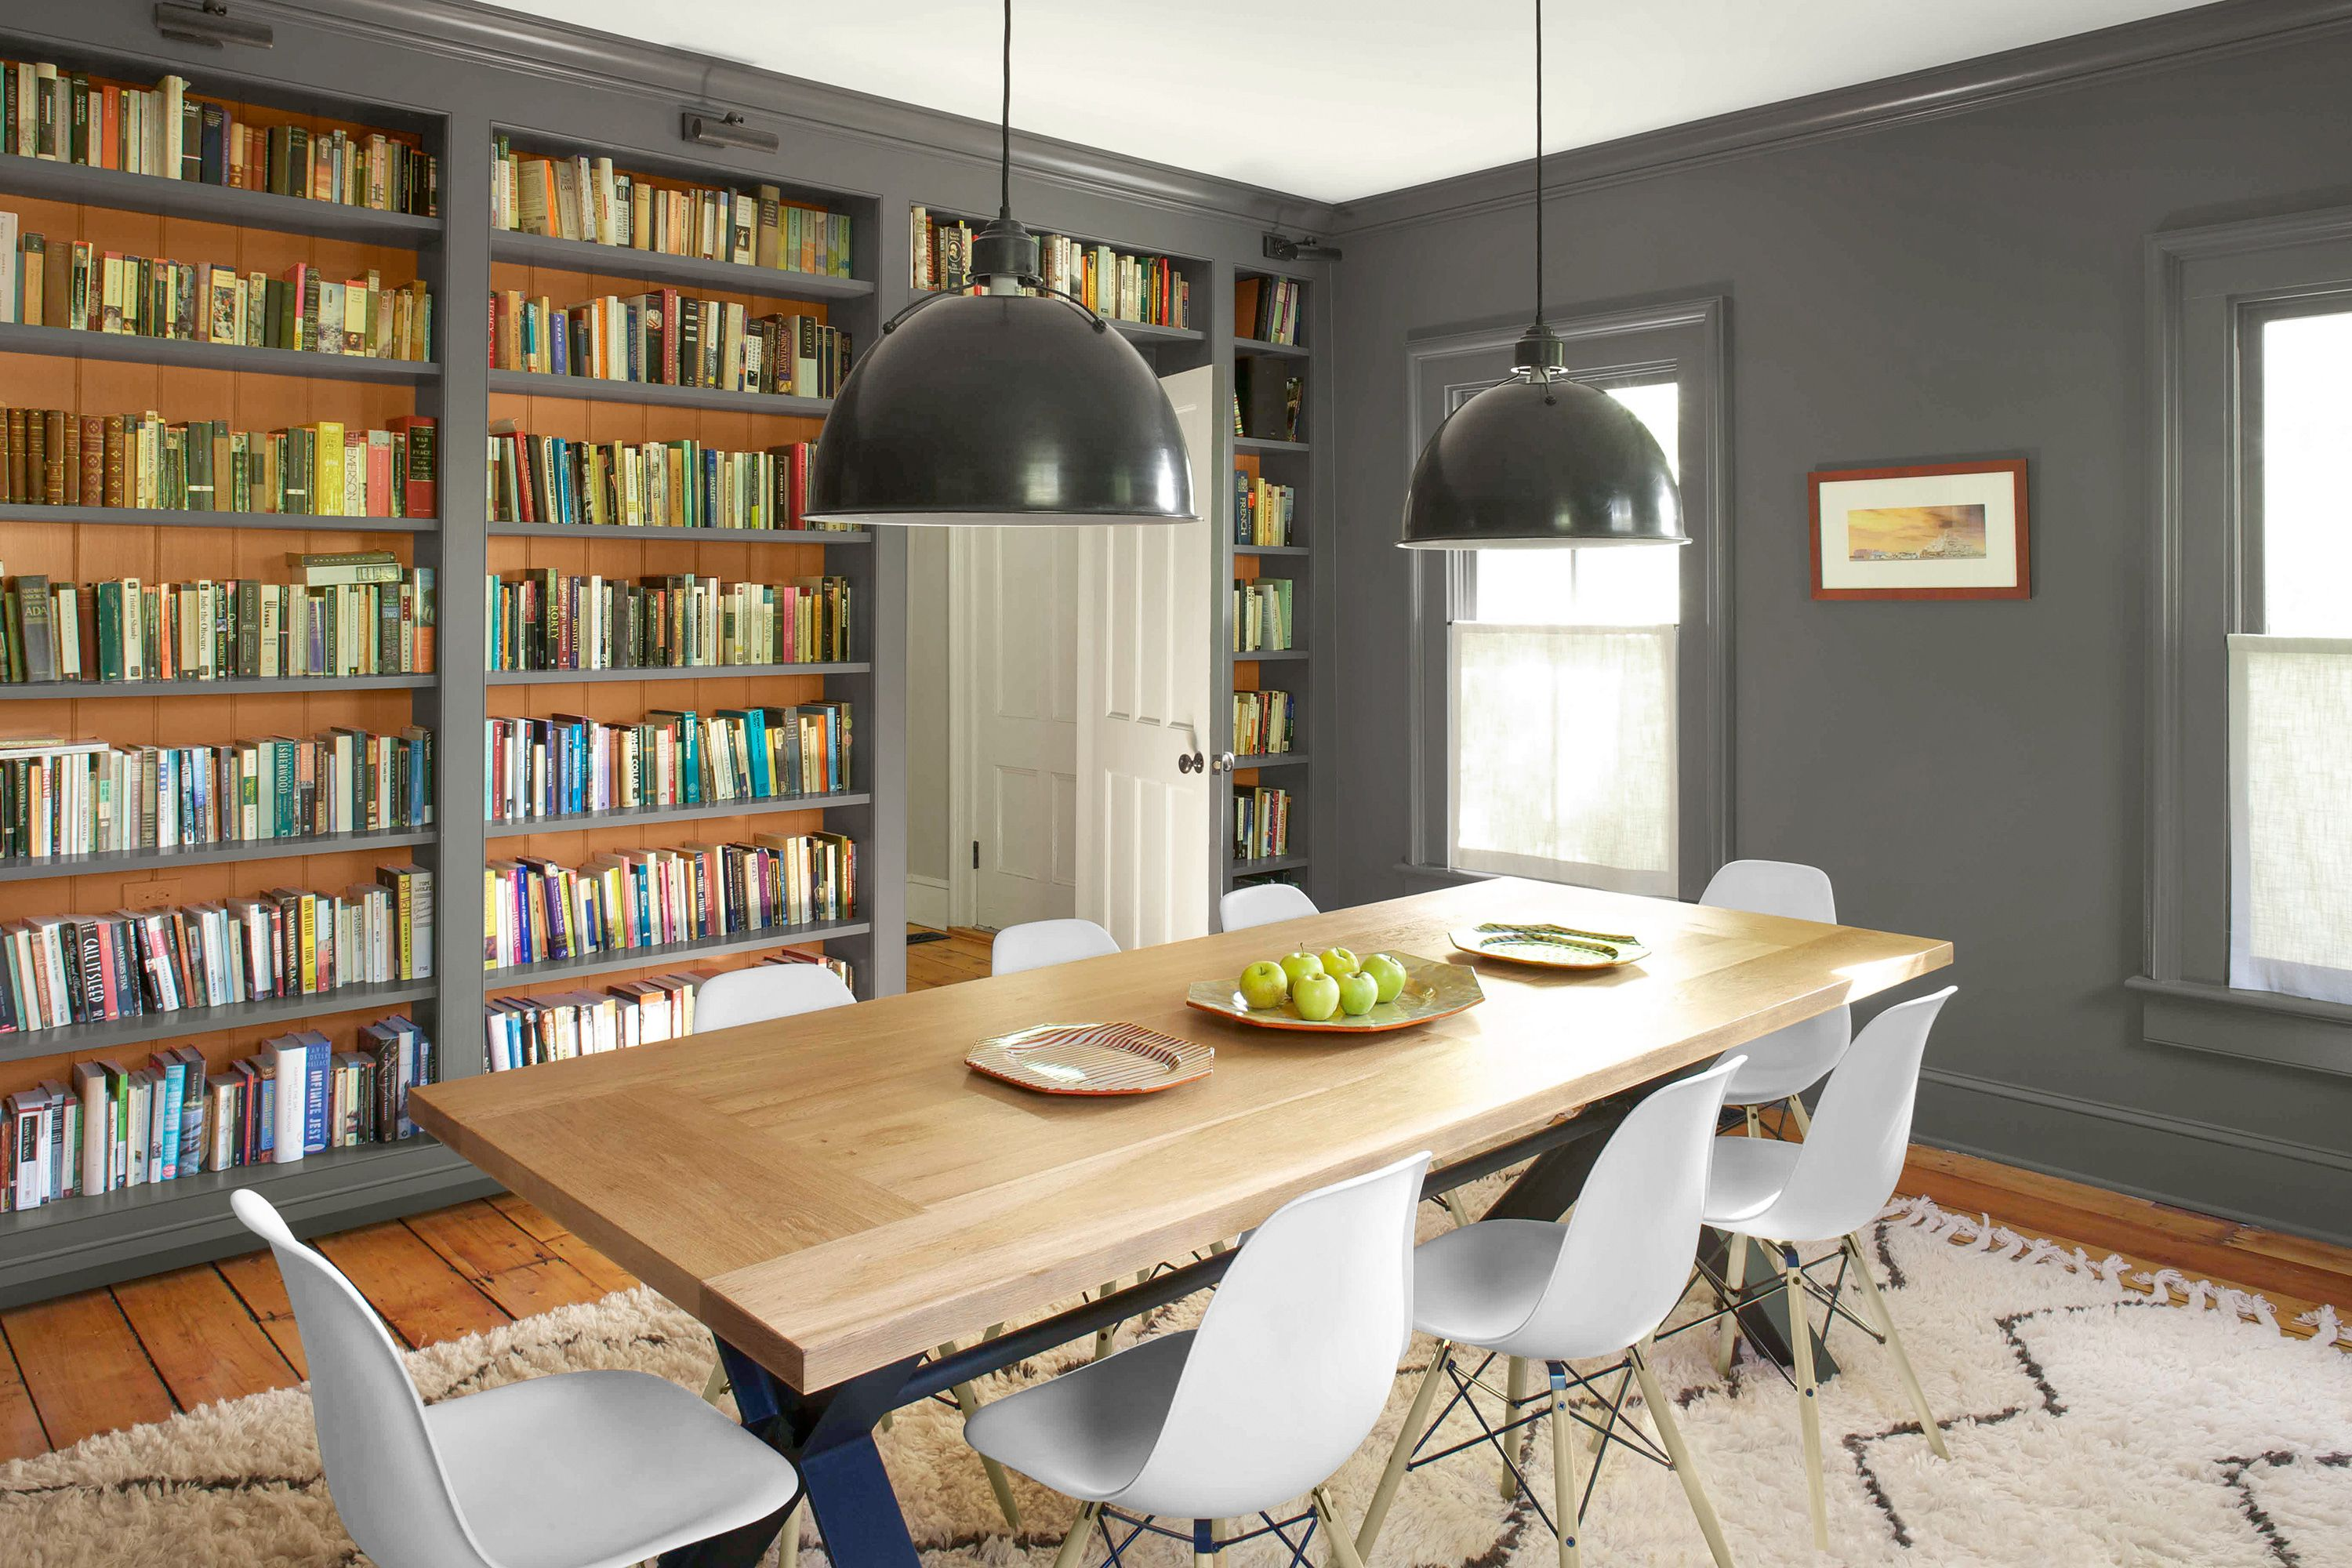 Dining Rooms Make Ideal Libraries Because They Often Have Expansive Walls That Can Be Transformed Into B Dining Room Combo Dining Room Library Farmhouse Dining Dining room librariesbeautiful and